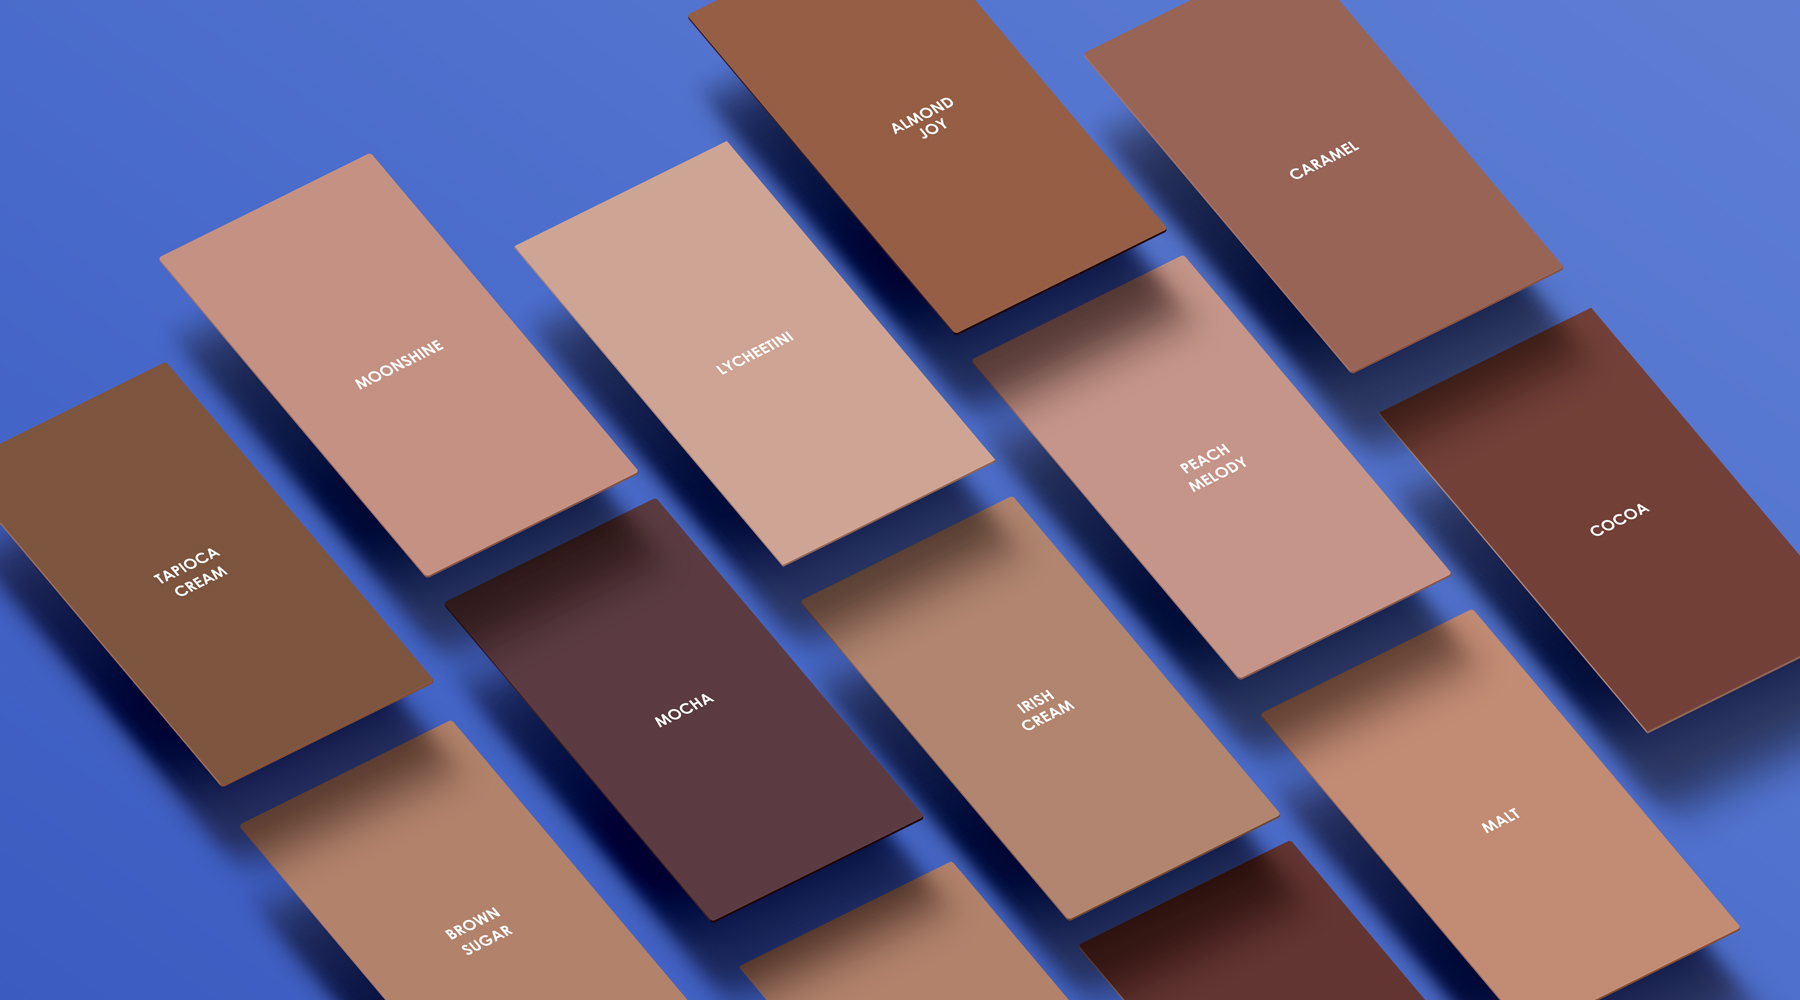 Nude comes in all shades, what's your color. 12 color pantones listed for Nude Barre